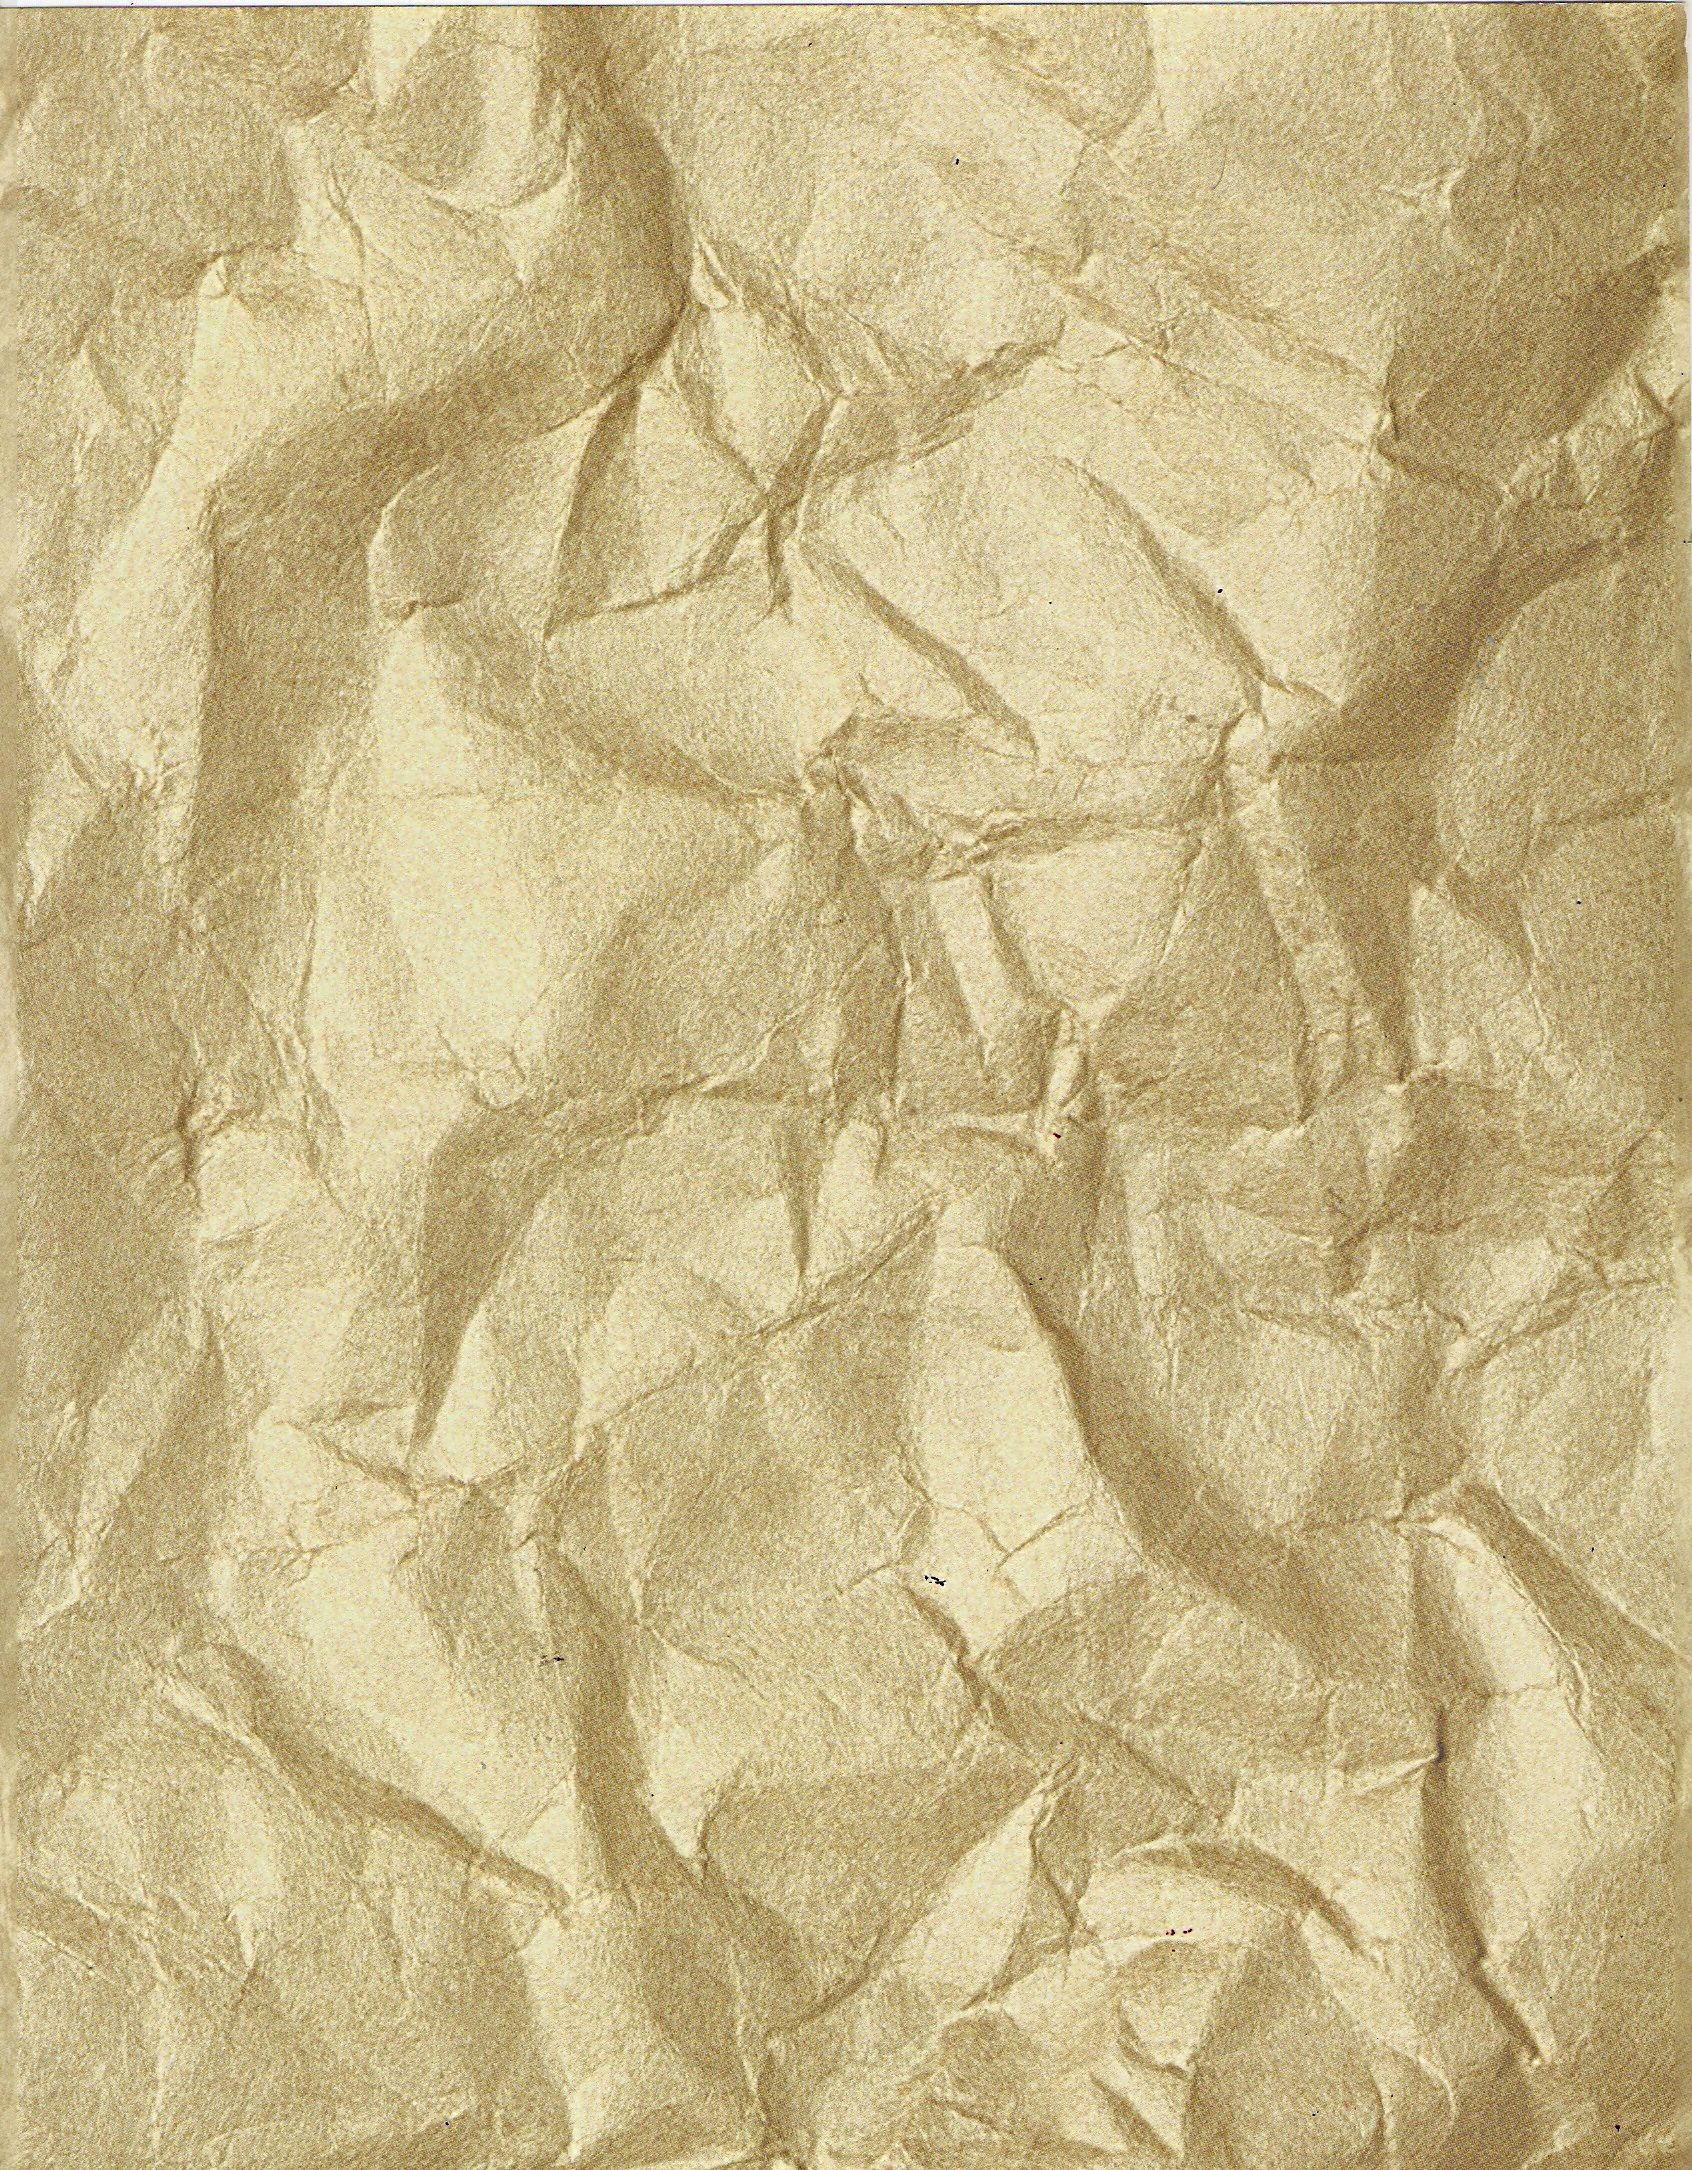 Download Texture Old Creased Paper Texture Background Paper Texture Paper Background Design Free Paper Texture